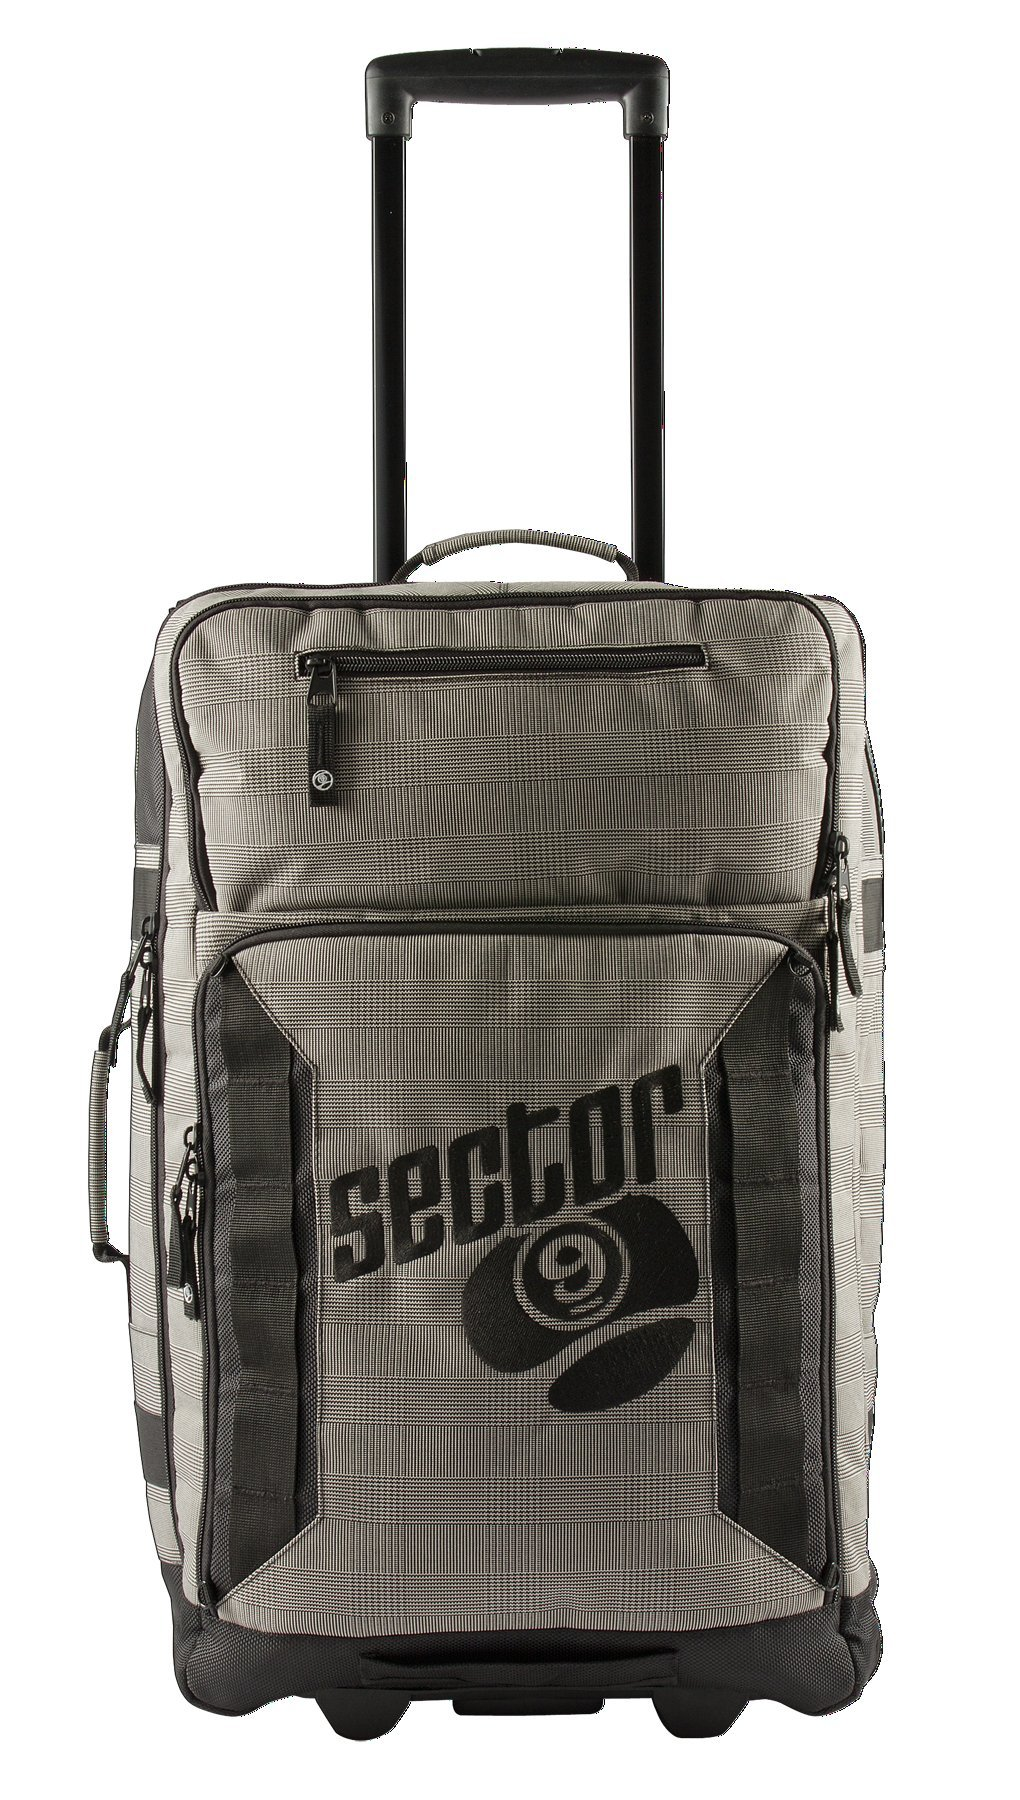 Sector 9 The Shlepp Tote Bag, Grey